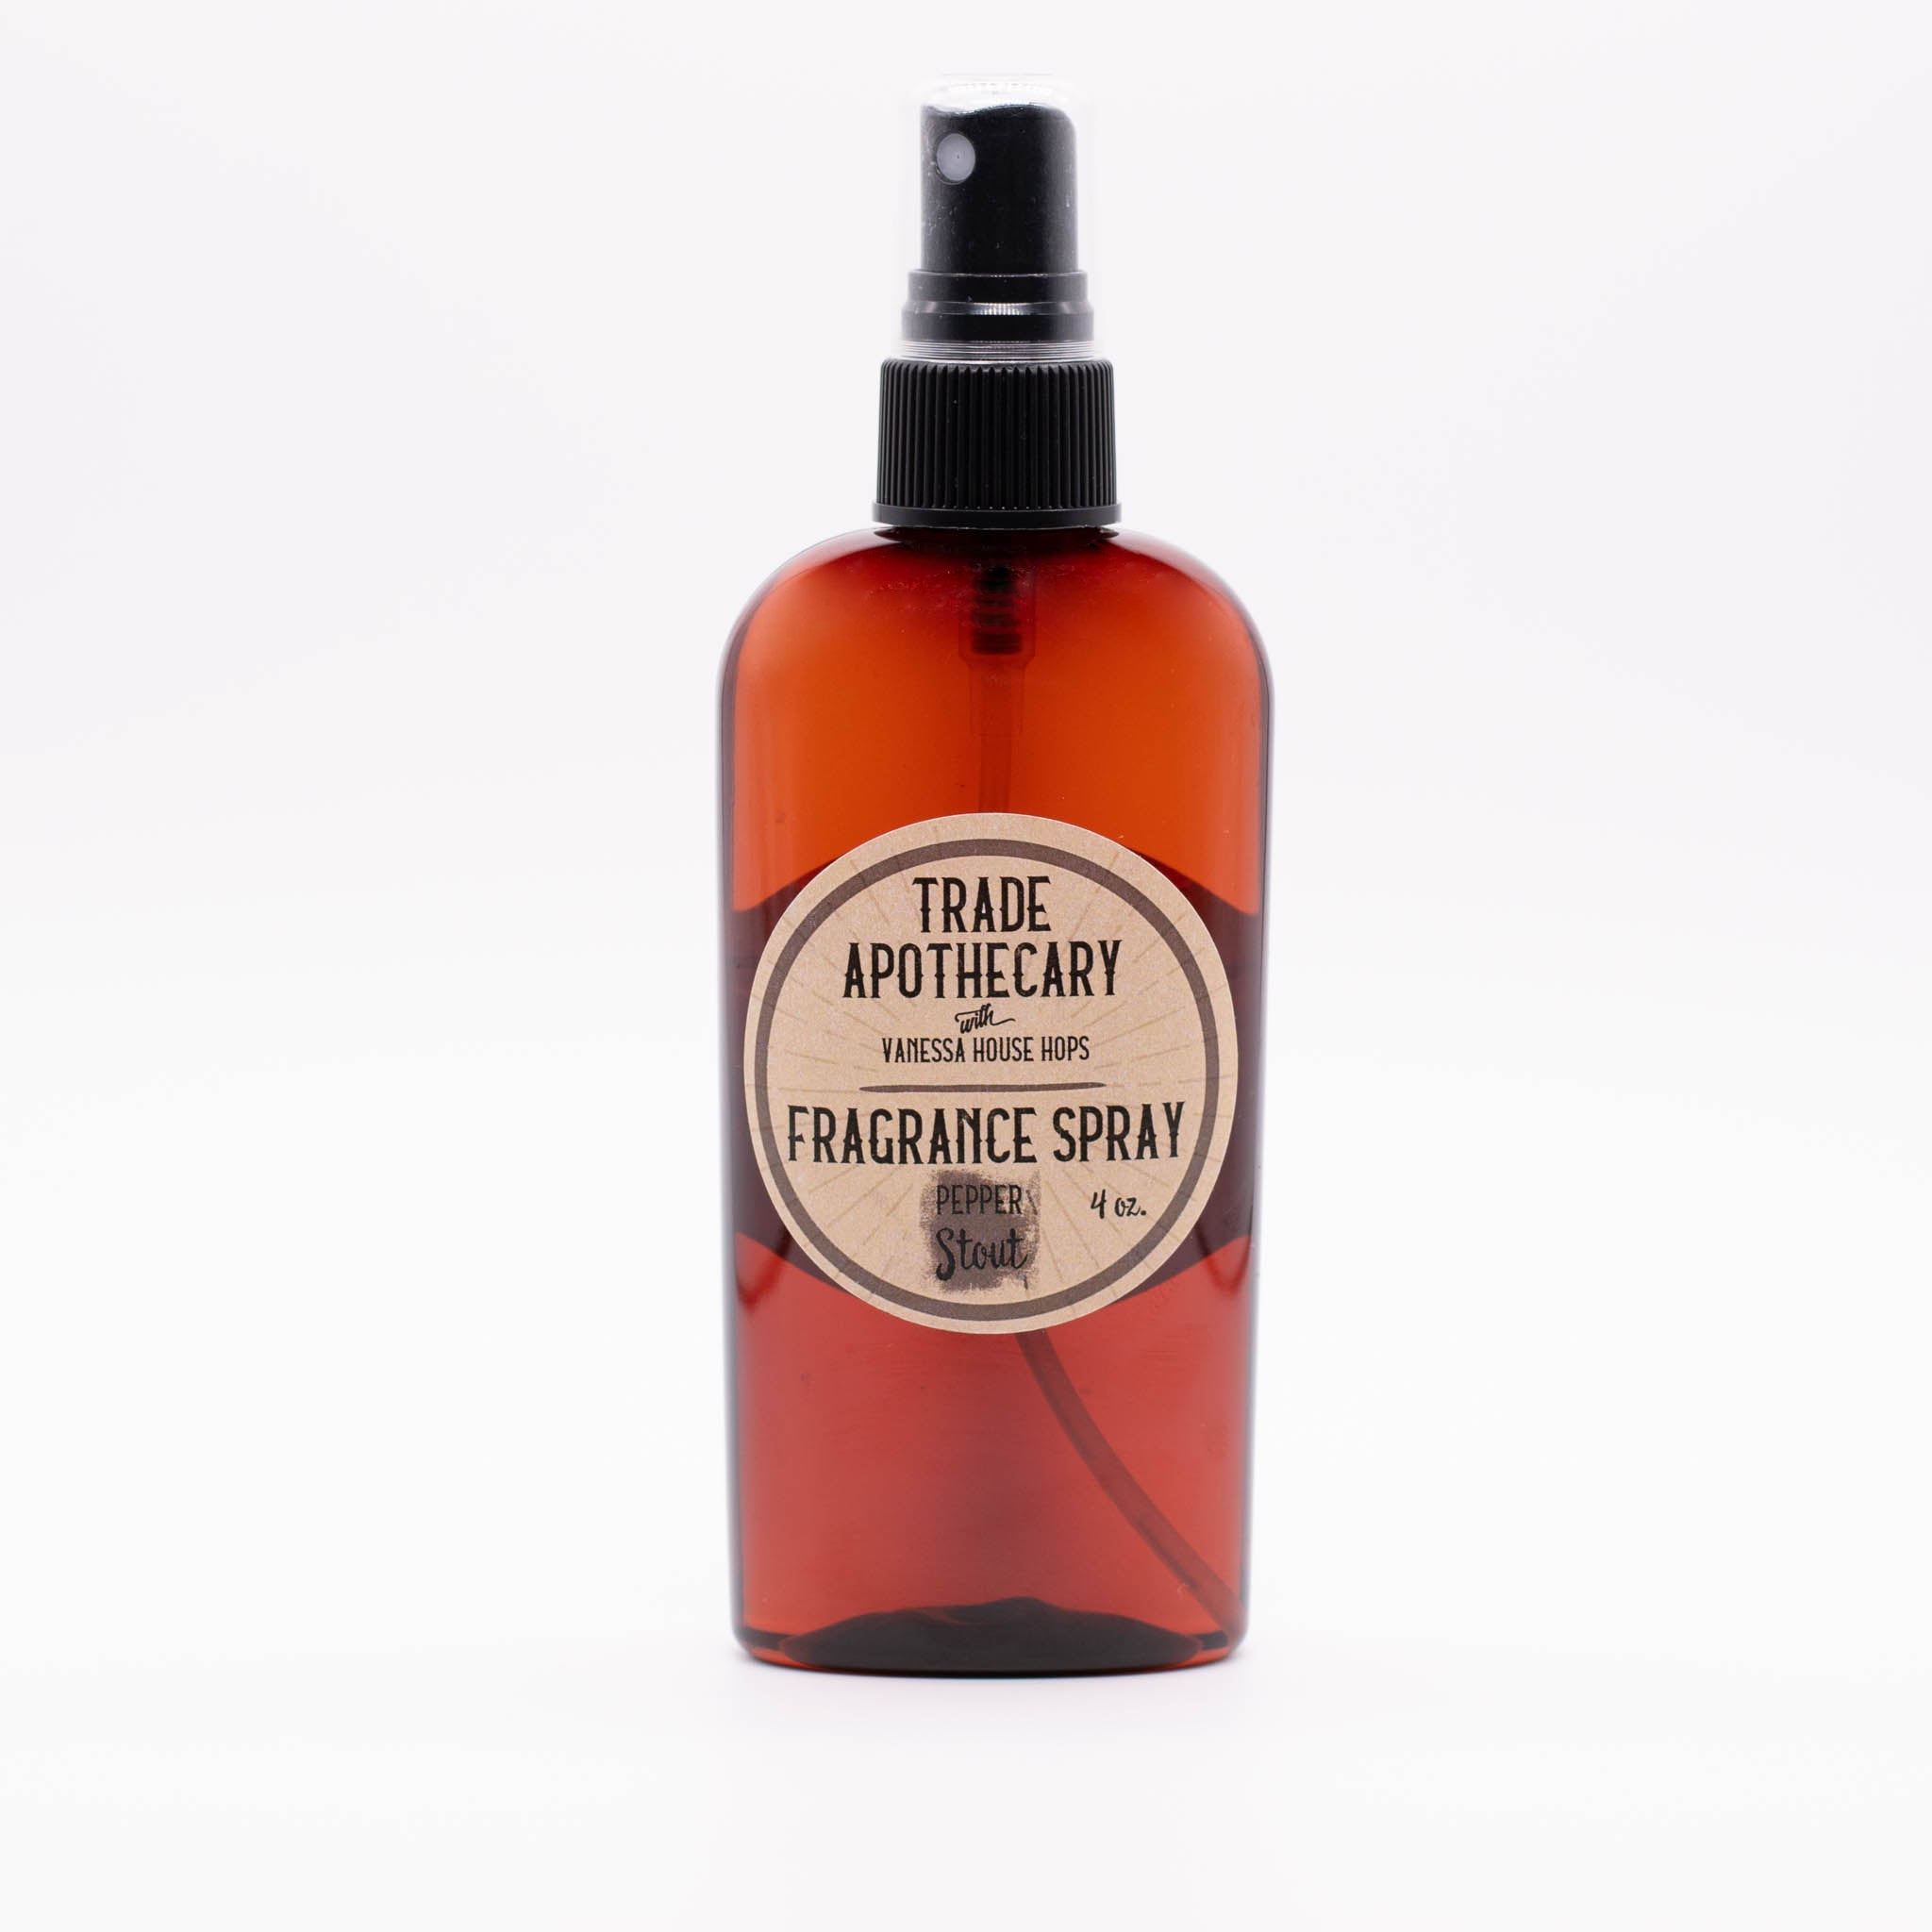 Pepper Stout Fragrance Spray